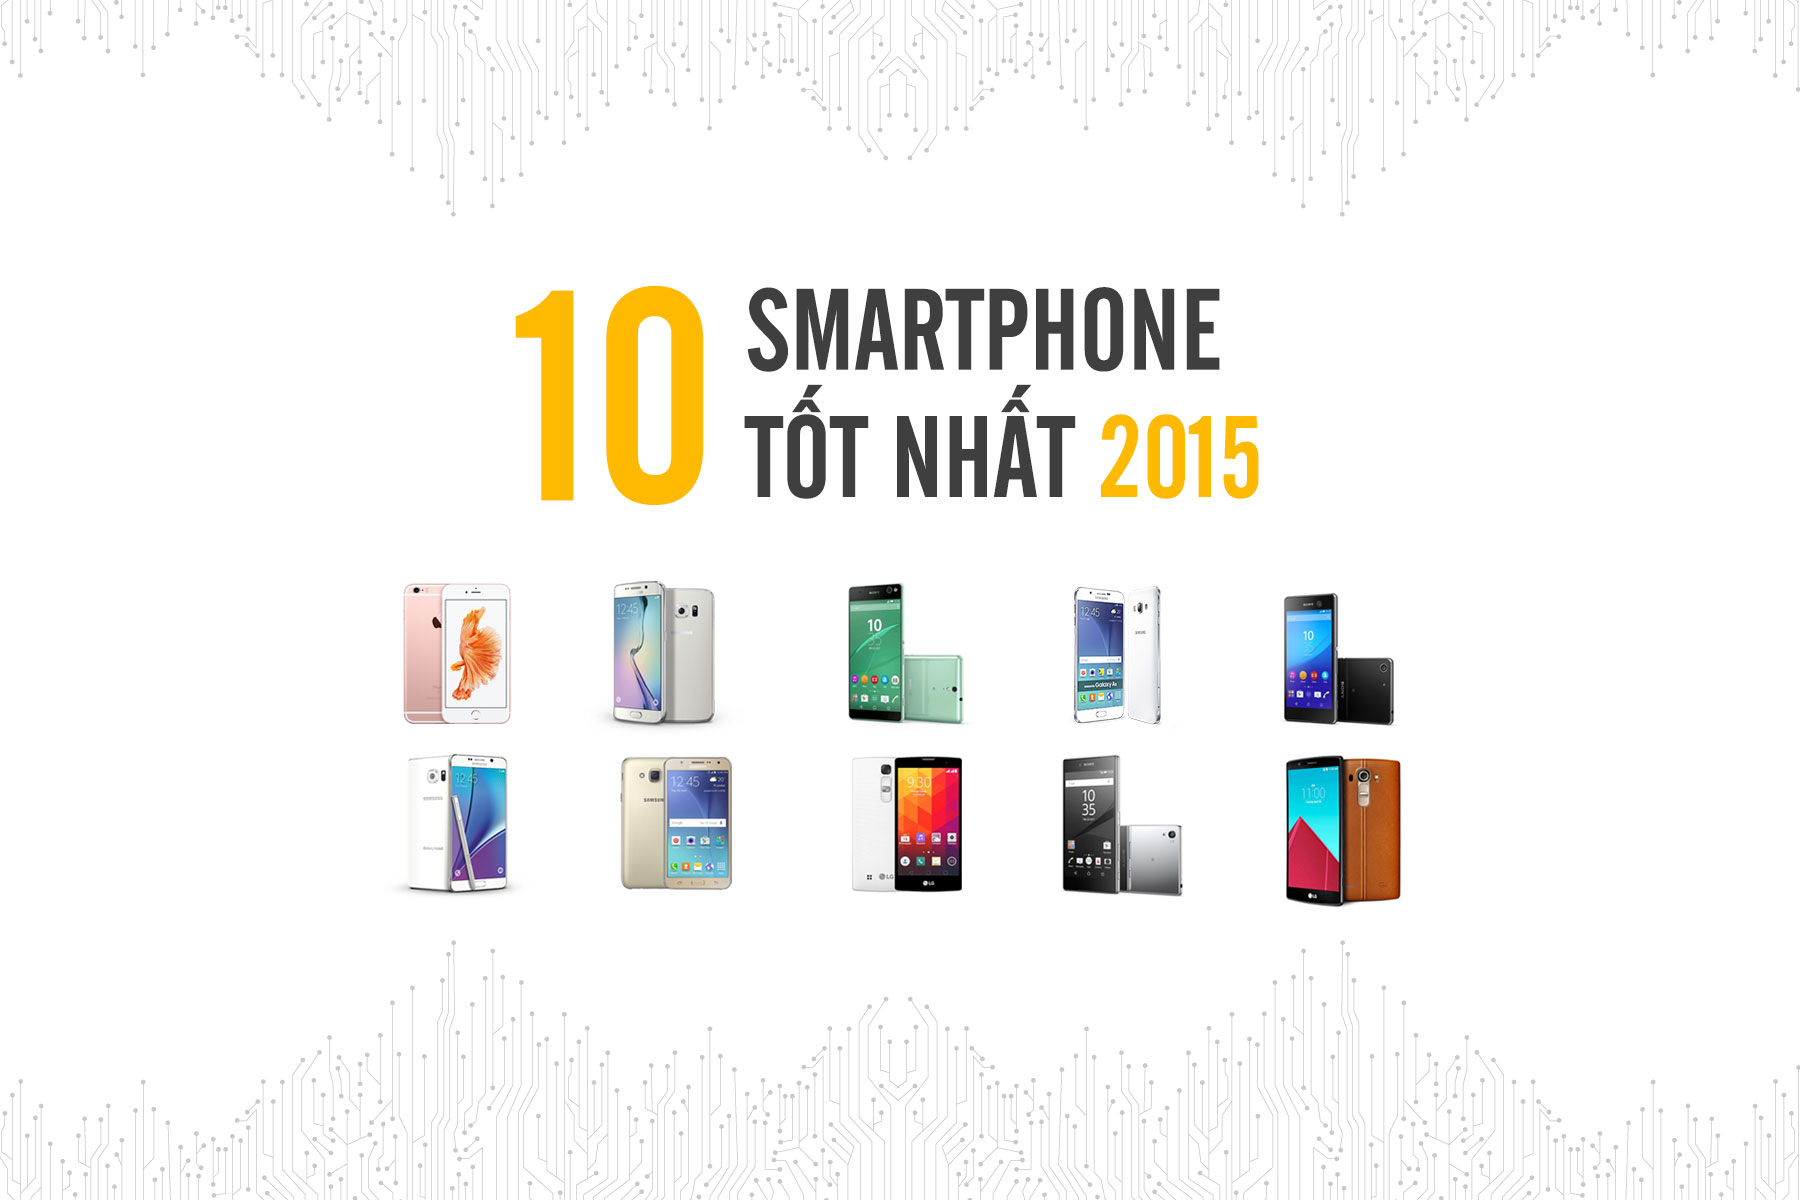 10 smartphone tot nhat 2015 hinh anh 1